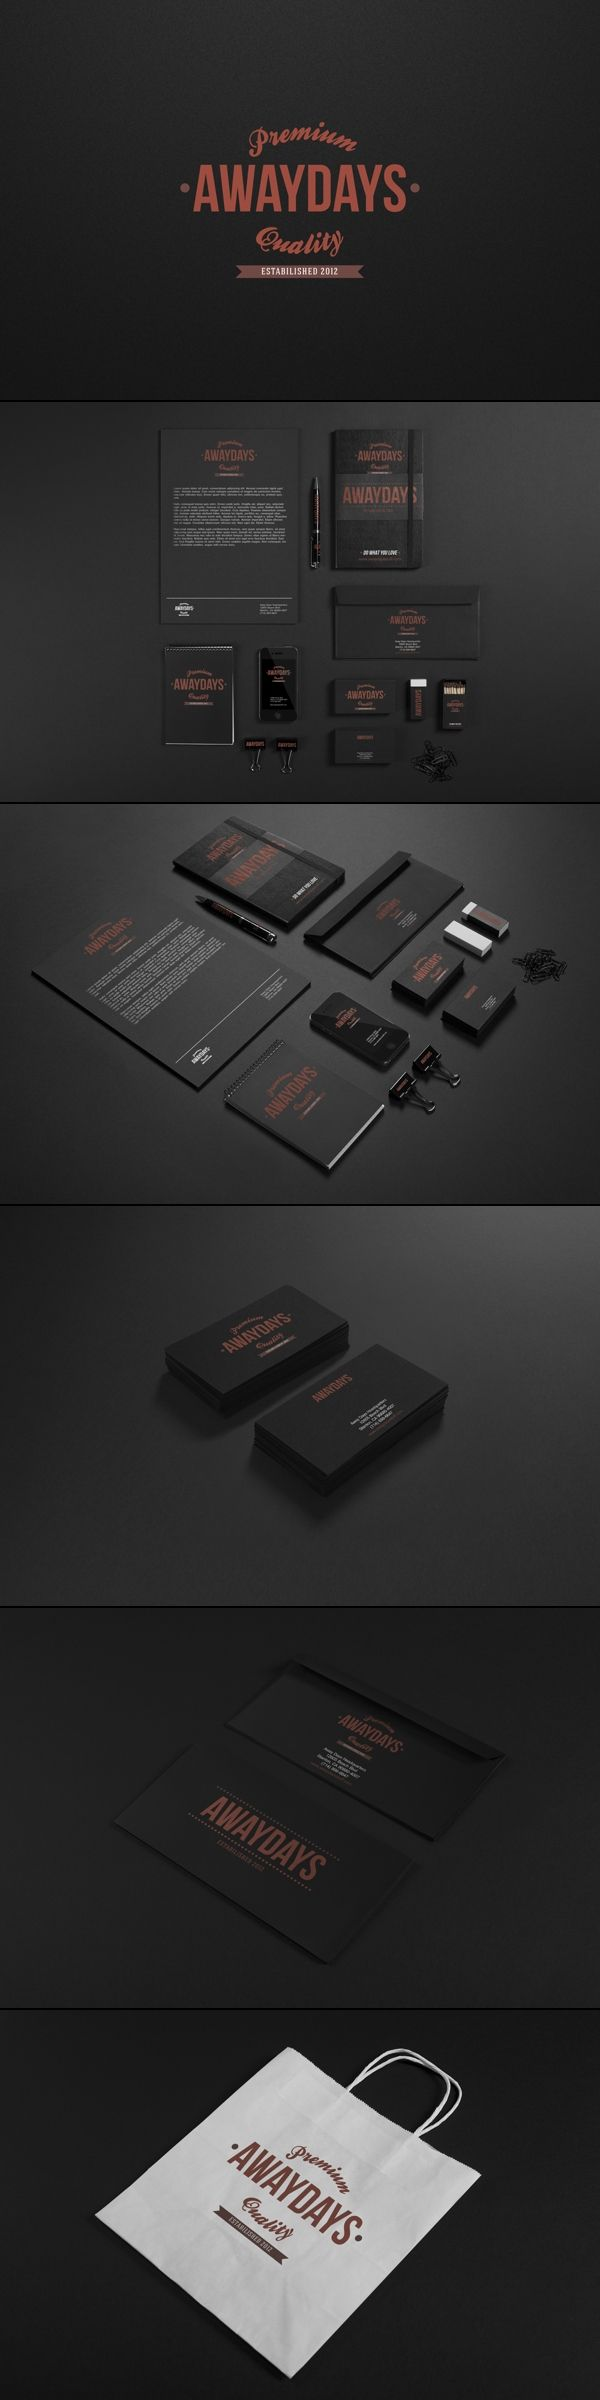 Away Days Branding Identity | #stationary #corporate #design #corporatedesign #identity #branding #marketing < repinned by www.BlickeDeeler.de | Take a look at www.LogoGestaltung-Hamburg.de